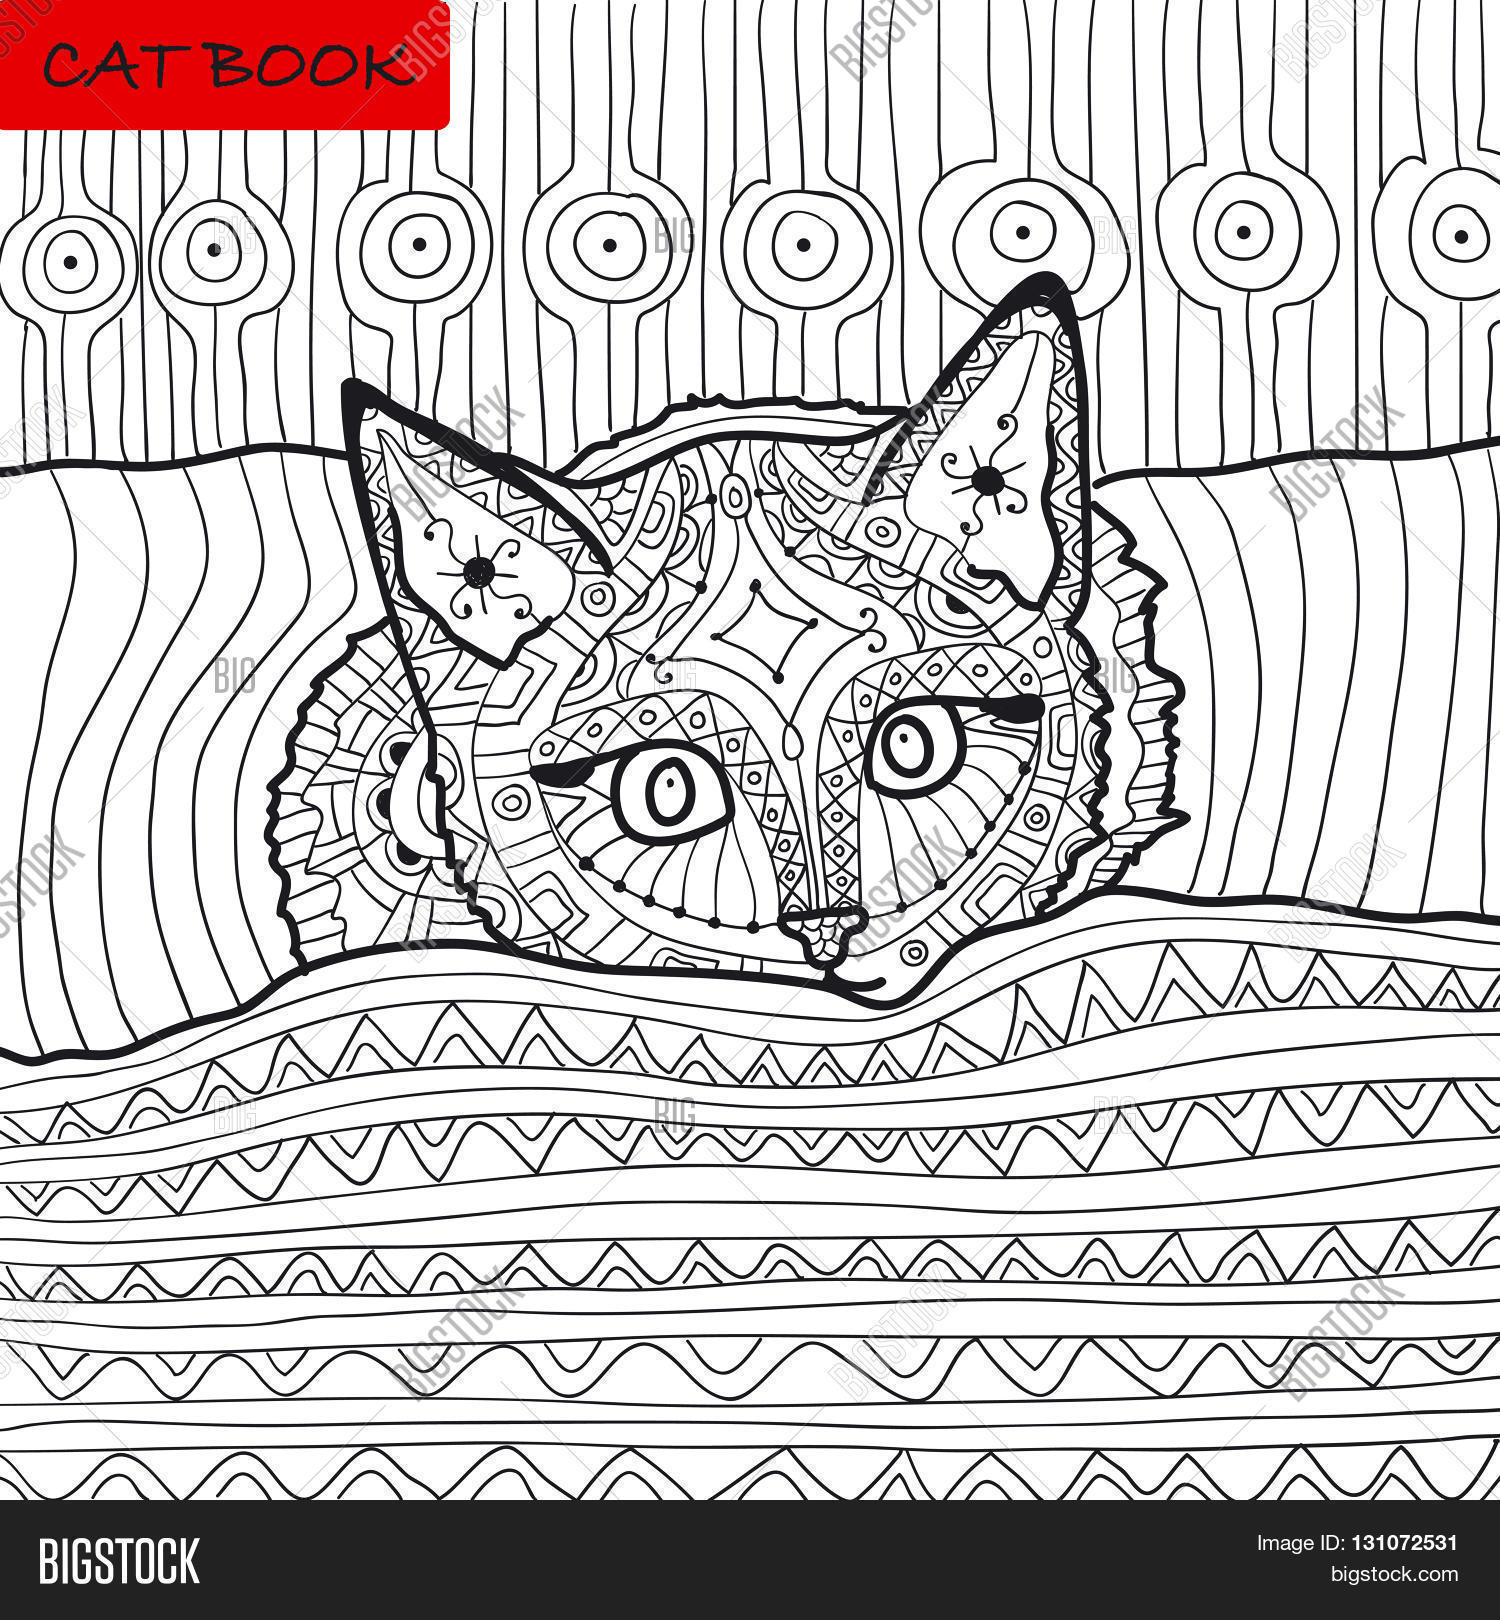 Zentangle Cat Book The Kitten On Bed Coloring For Adults